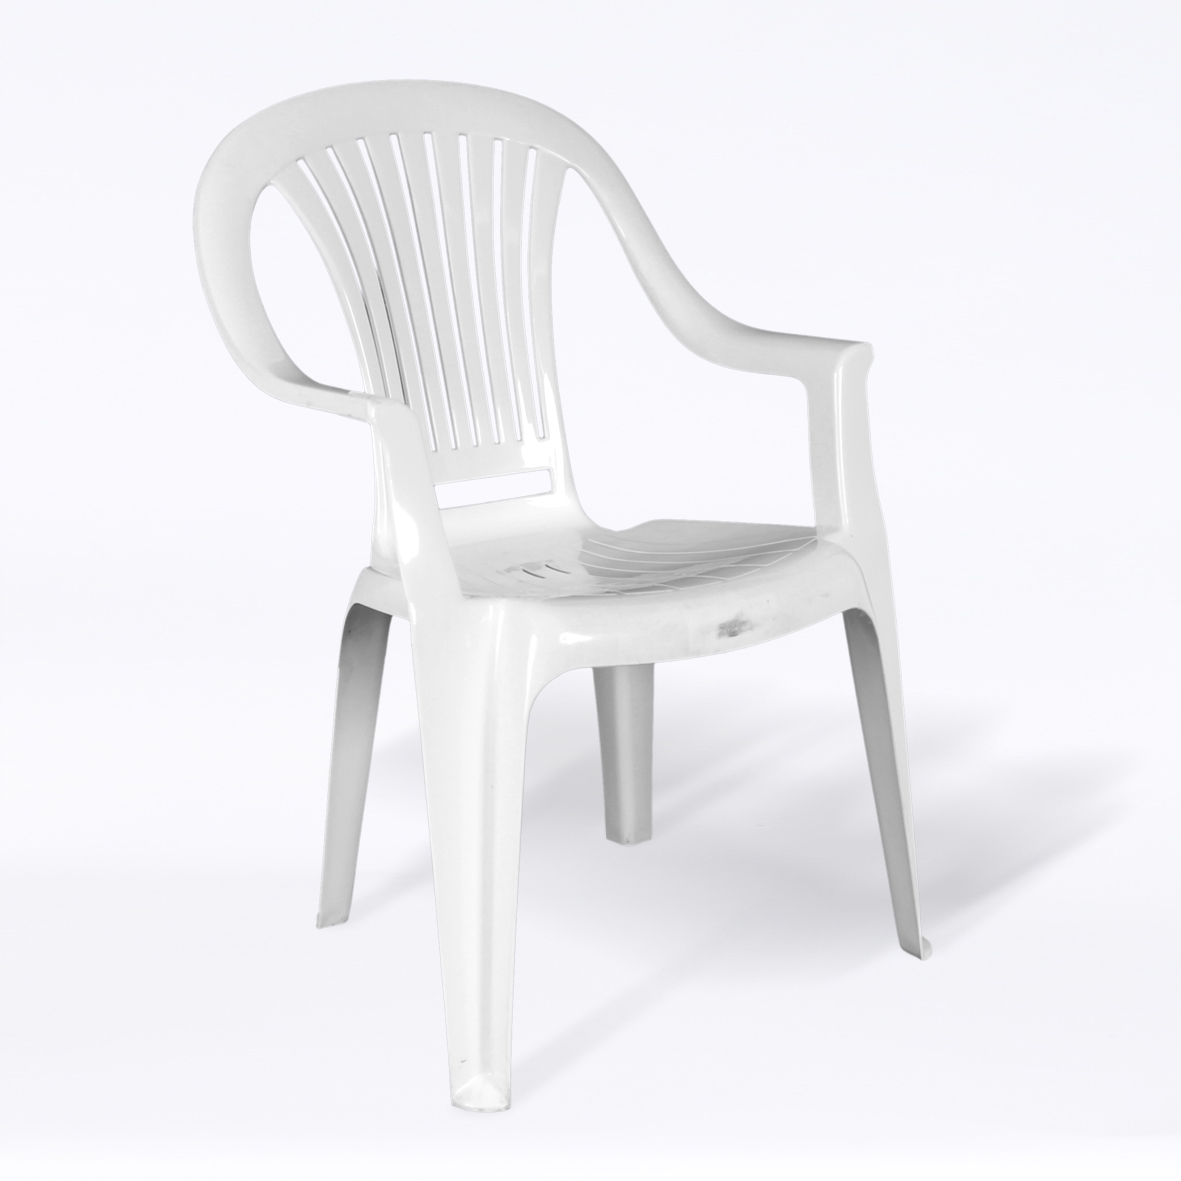 patio stackable sidechair a lawn chairs plastic table white charming ss moon